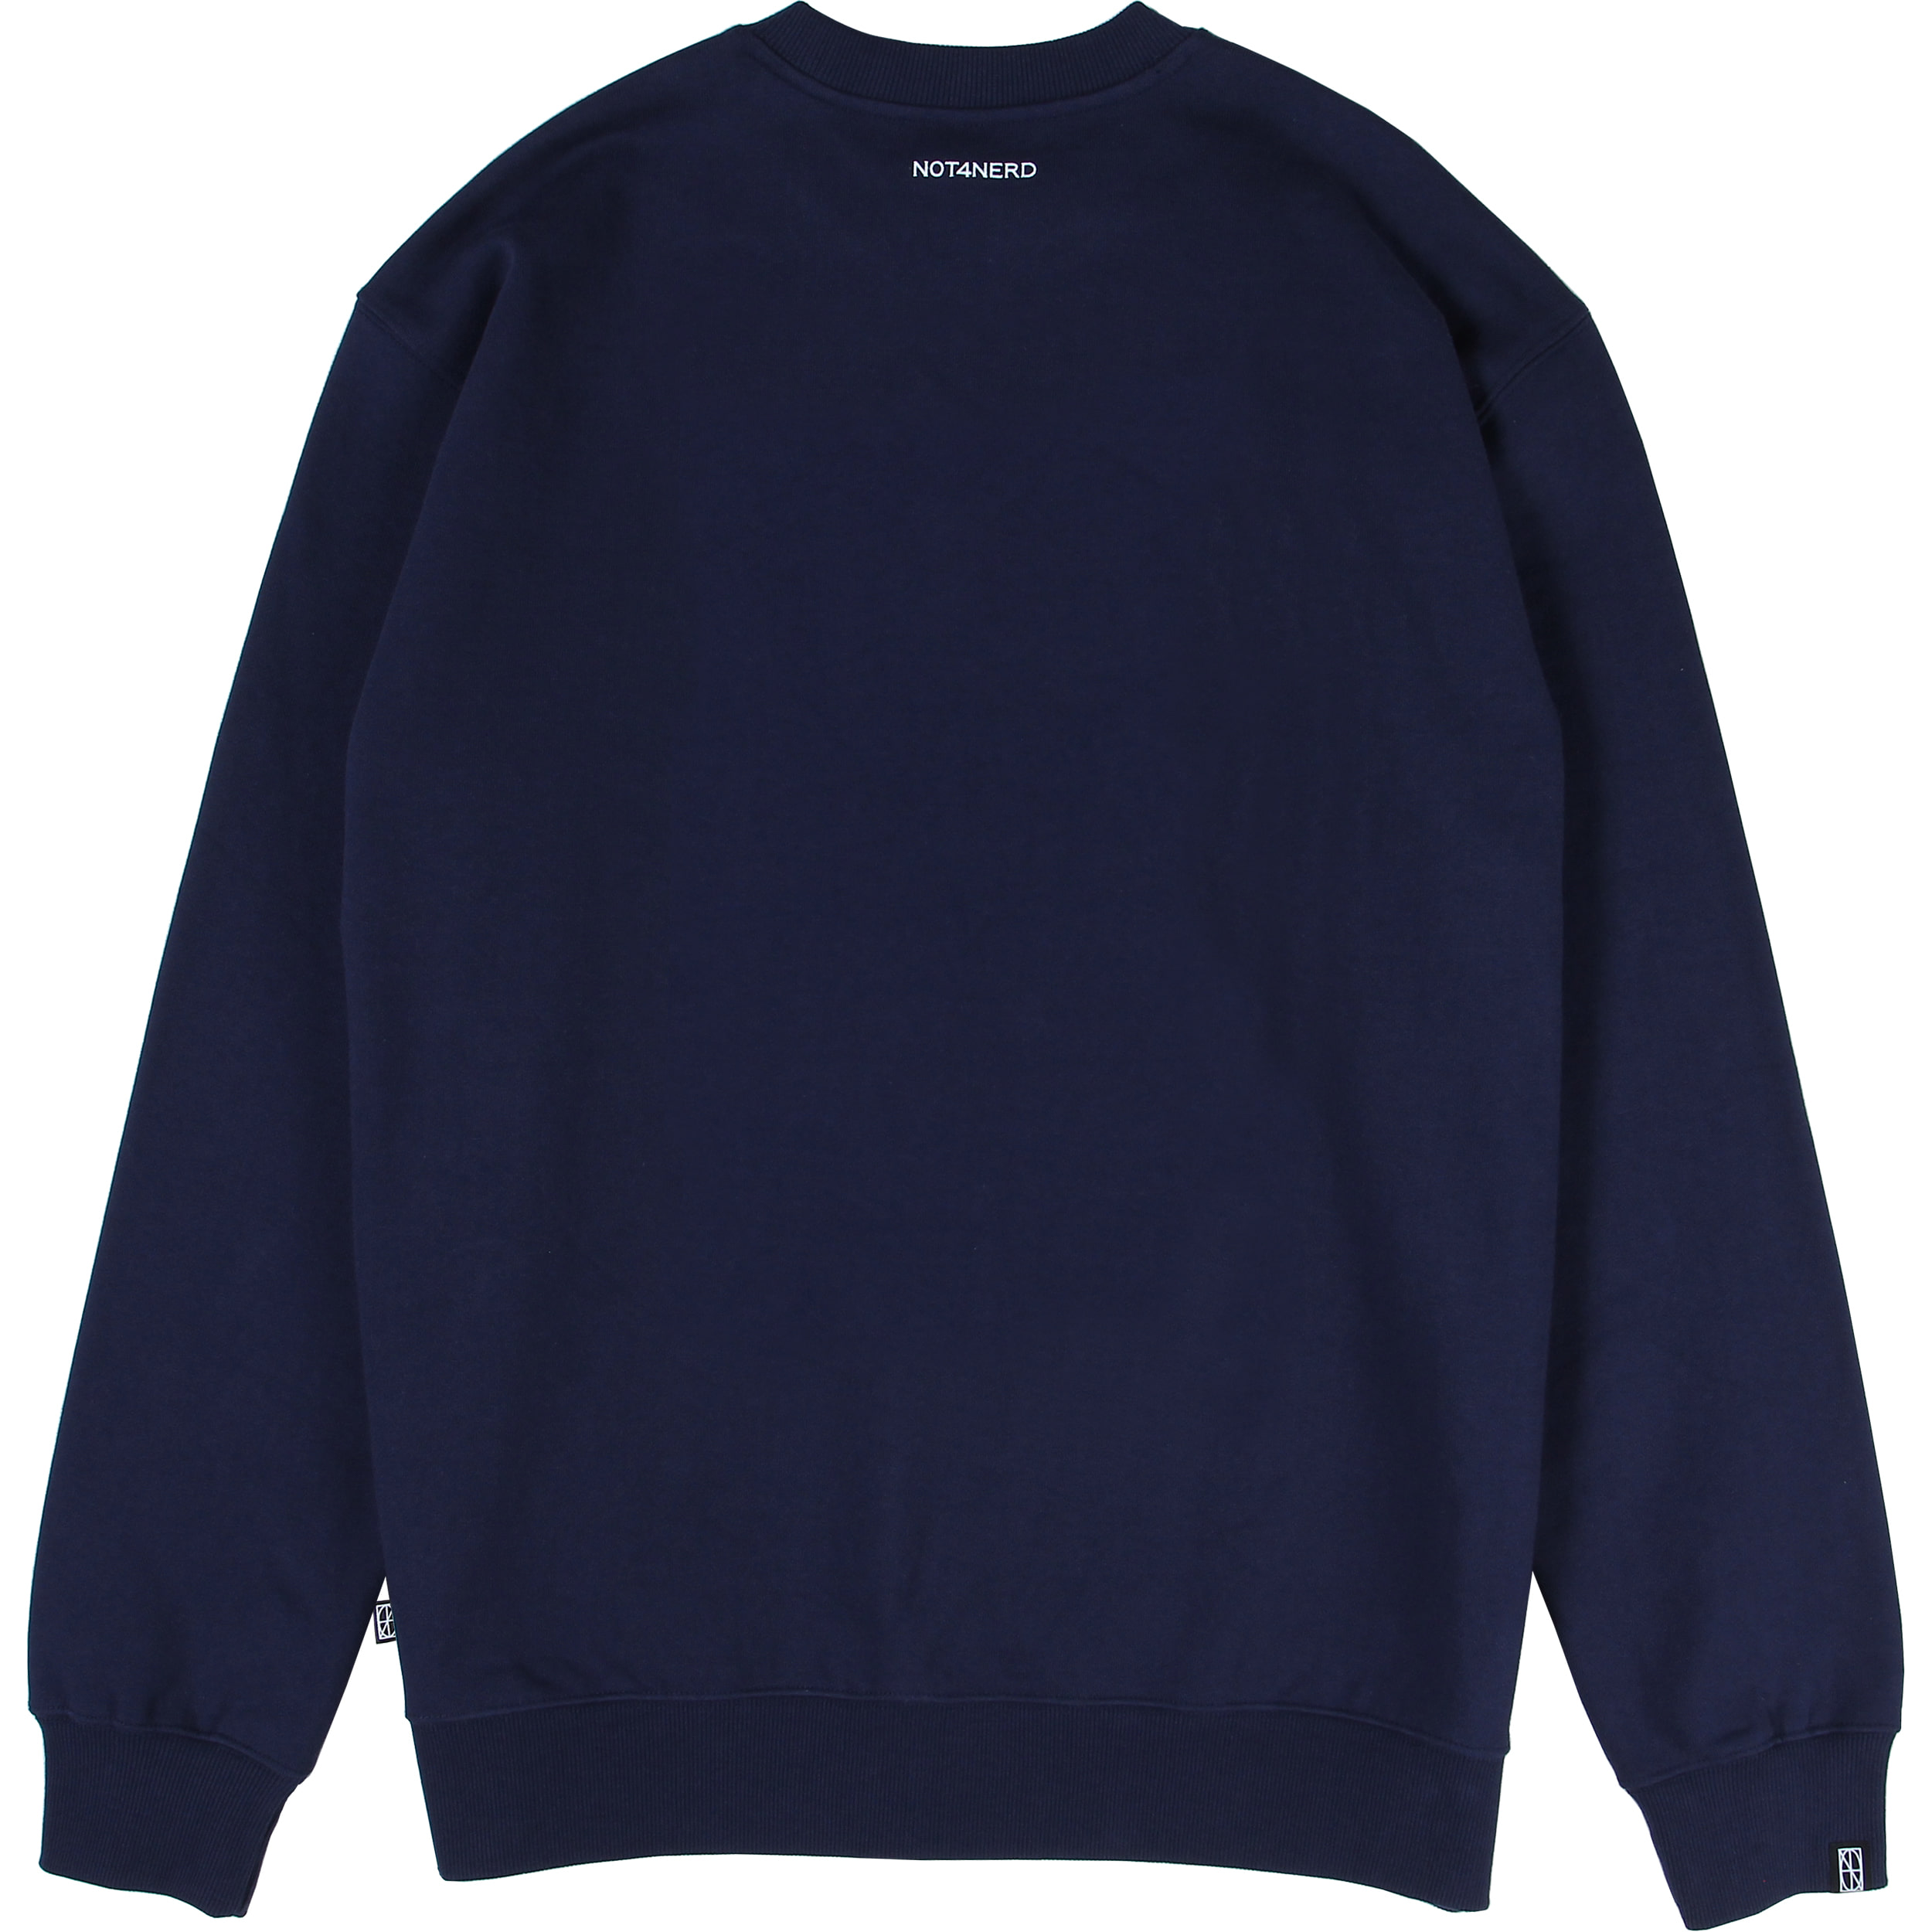 N-Justitia Crewneck [Navy],NOT4NERD